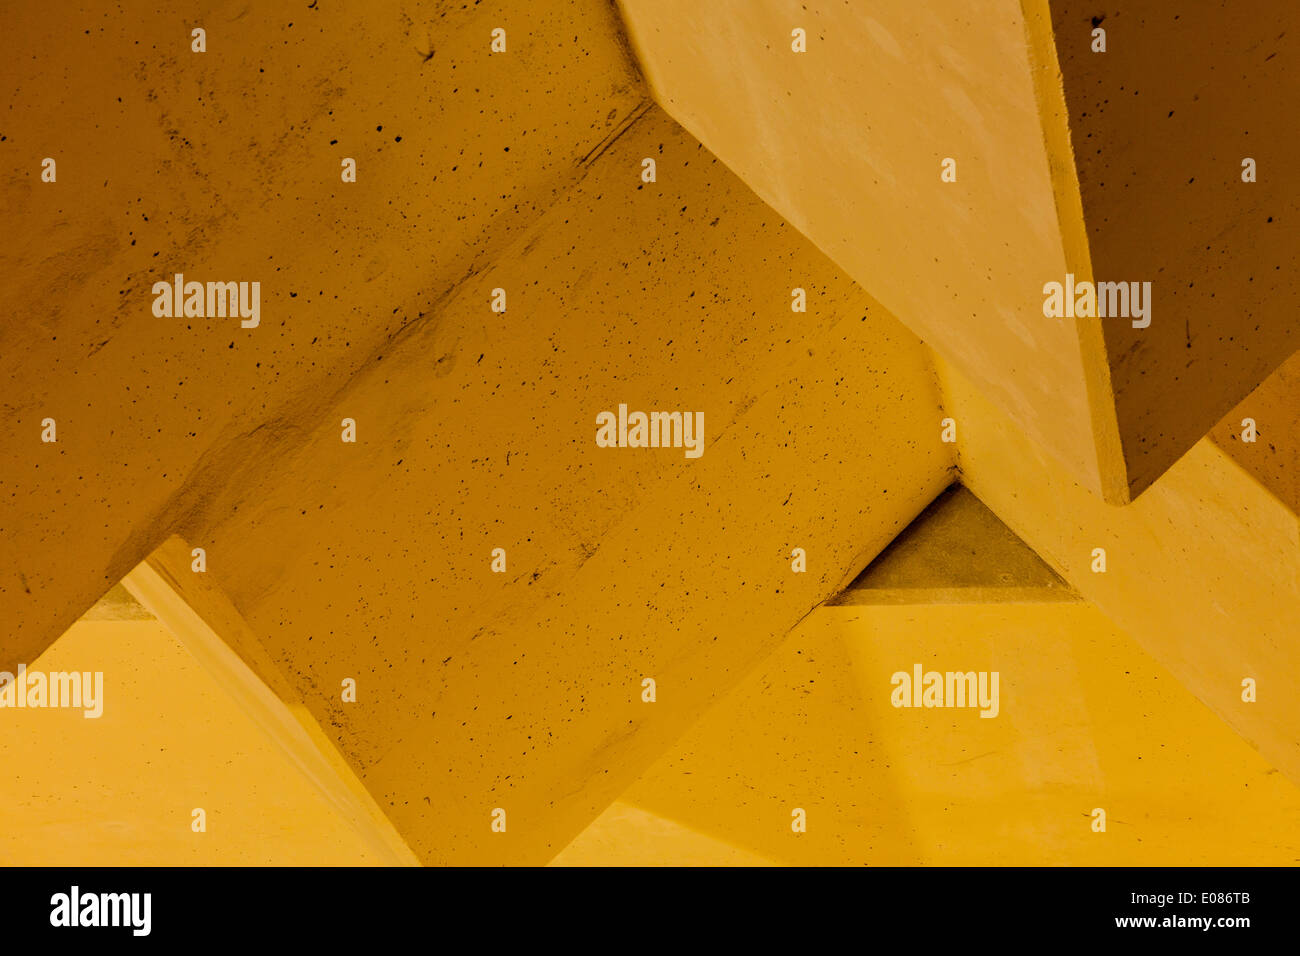 Concrete blocks used for radiation shielding at a particle accelerator facility - Stock Image